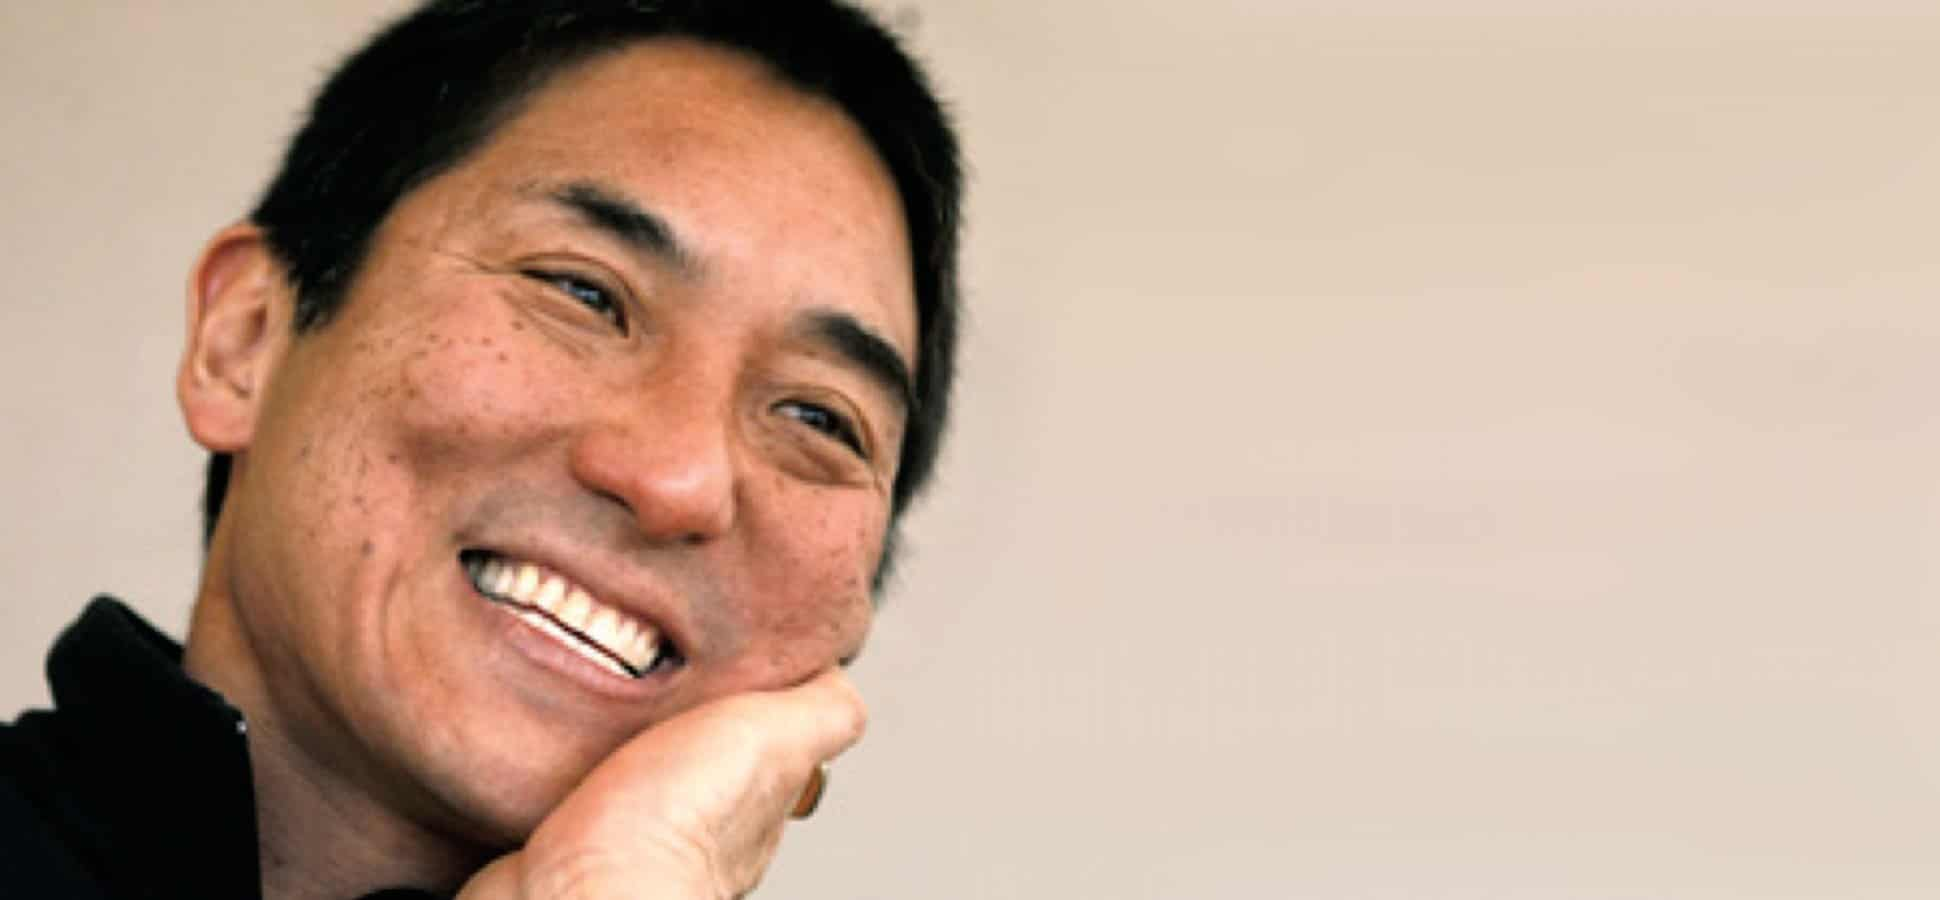 Guy Kawasaki's 14 social media tips